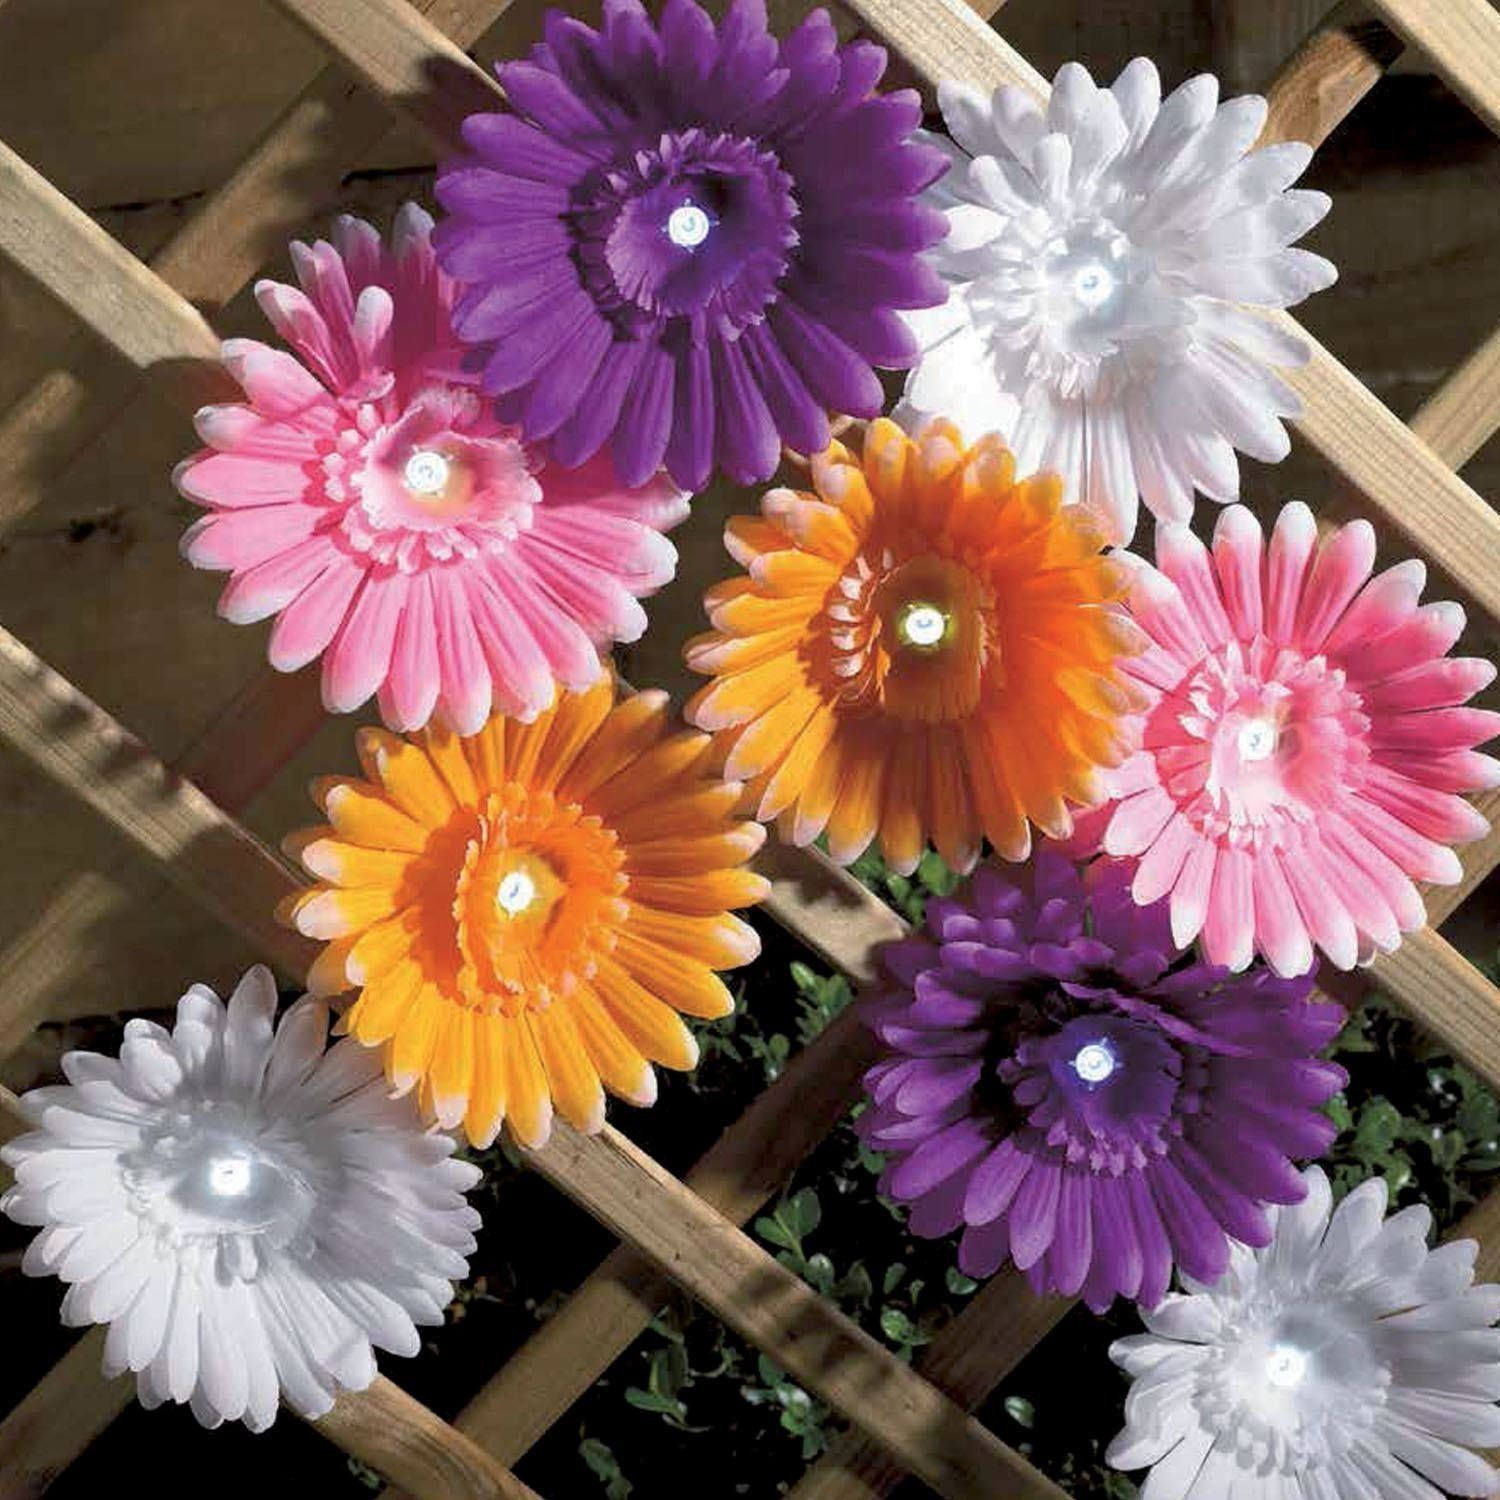 Daisy Solar String Lights: 12 Solar Powered Daisy Flower Led String Light Multi